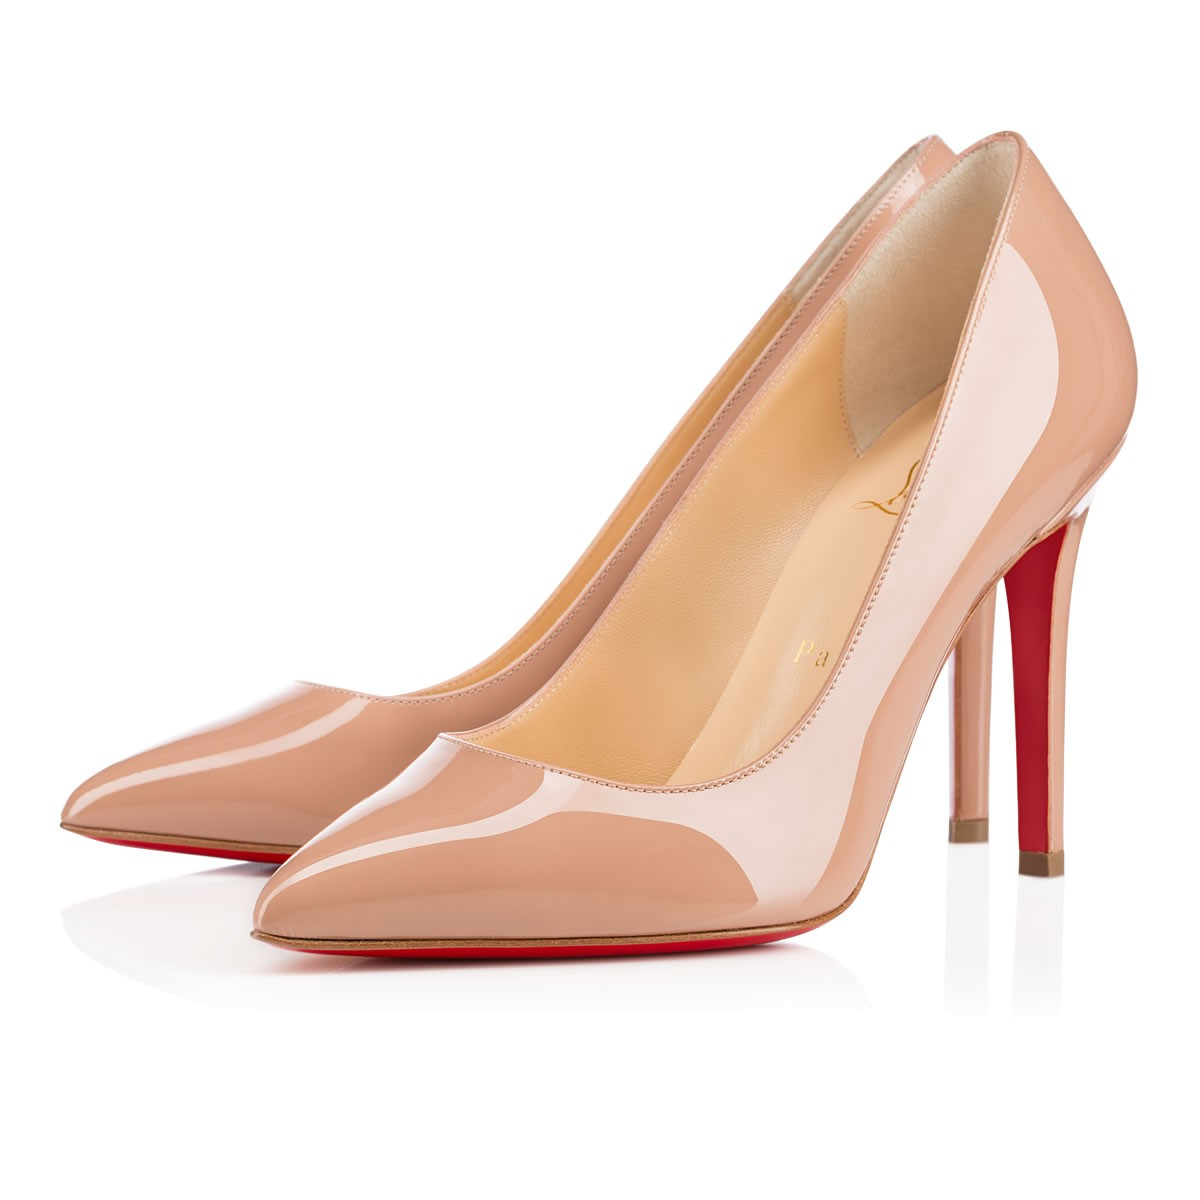 chaussures louboutin modele pigalle